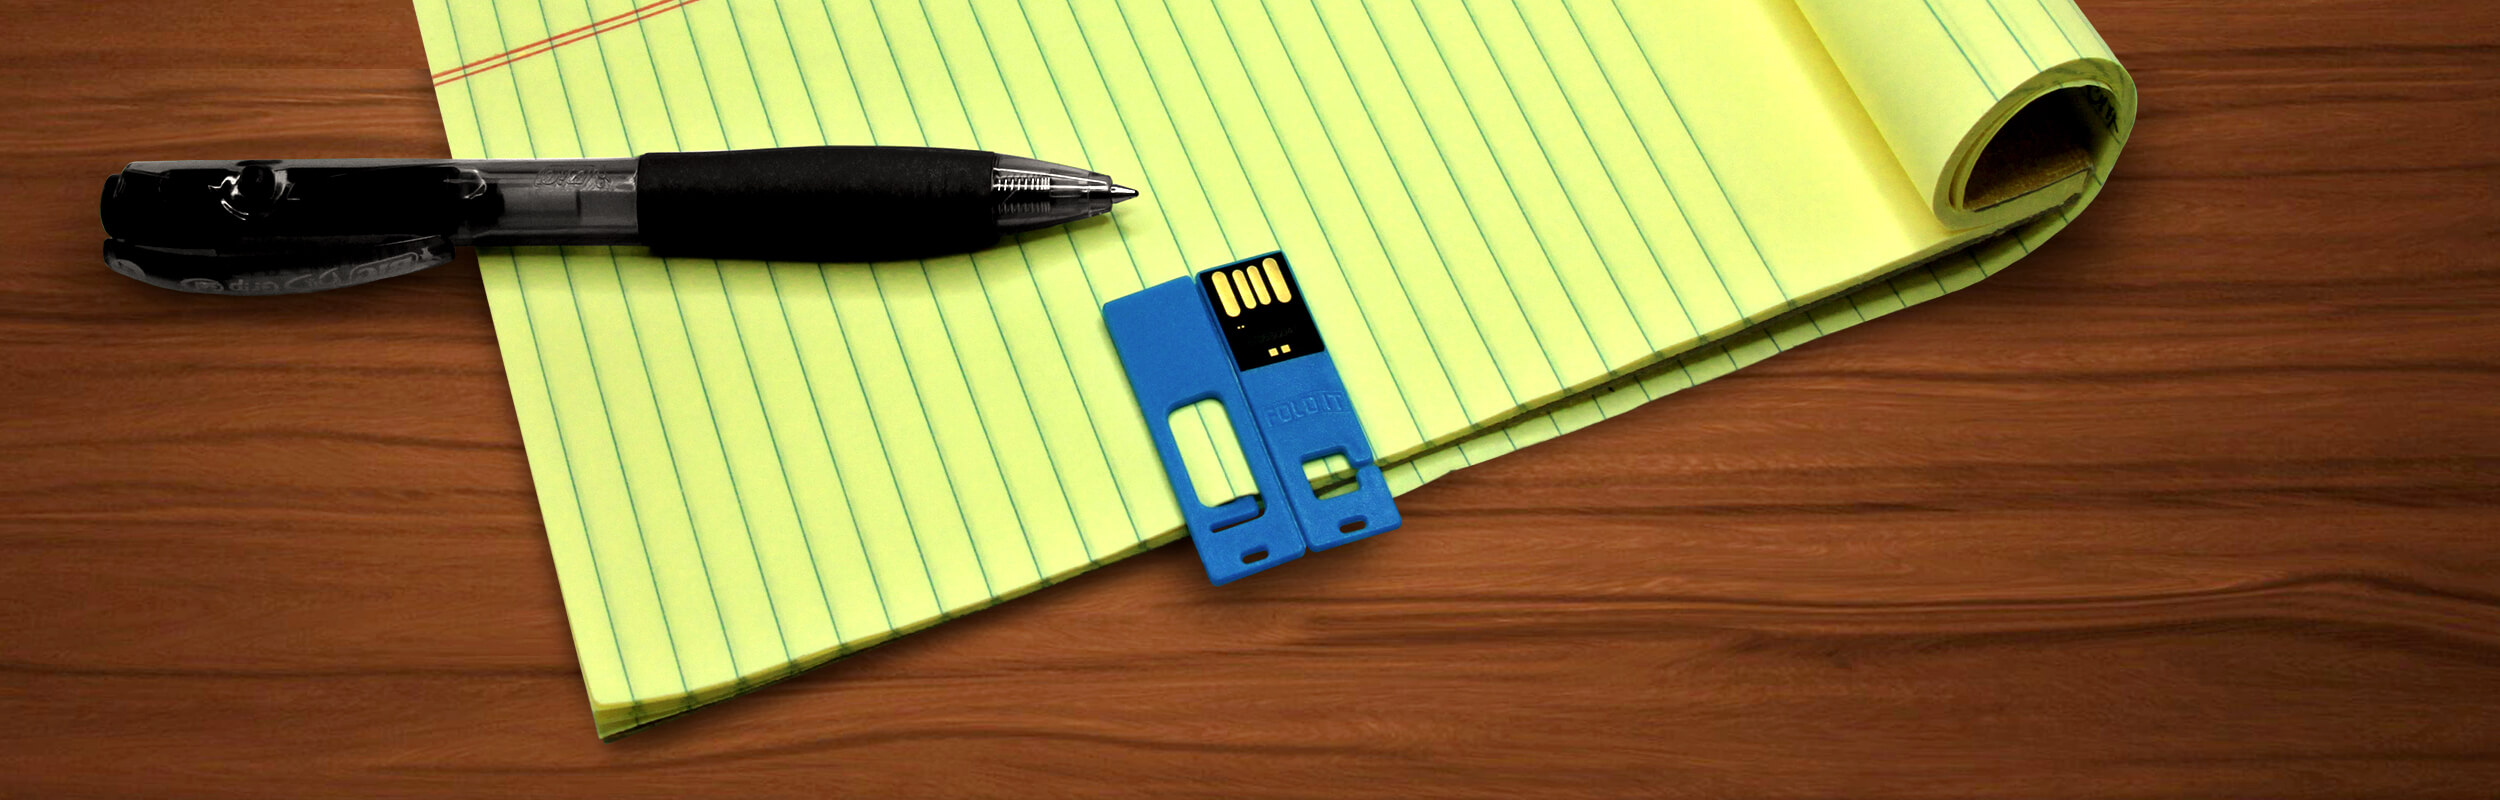 FoldIT® USB Flash Drive Clipped to Notepad